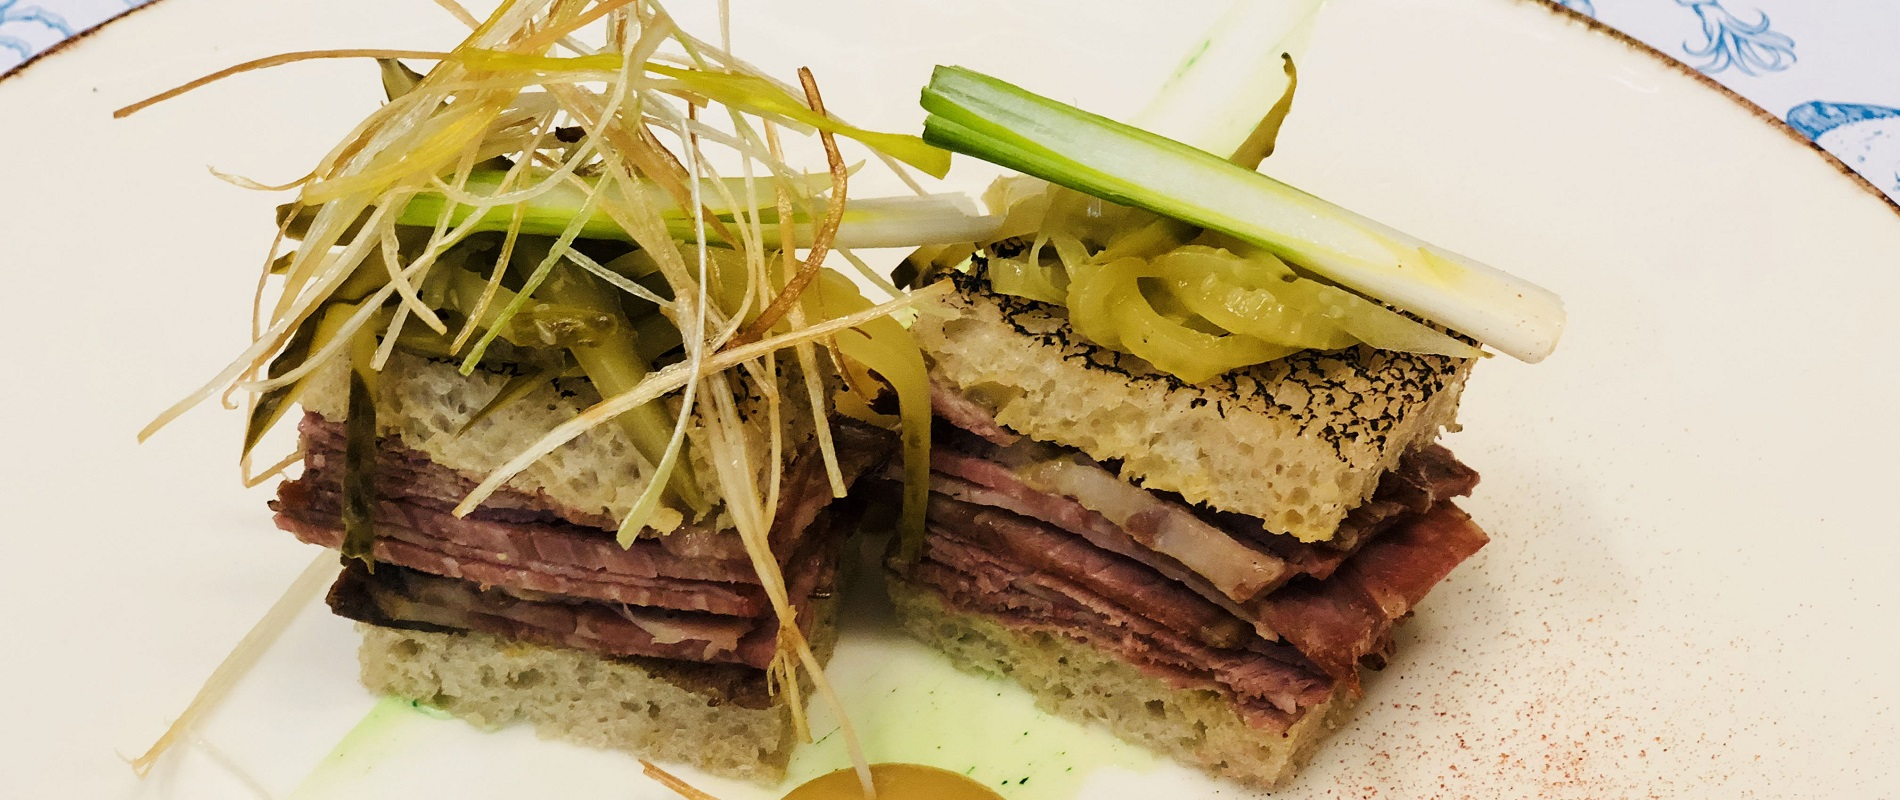 The first appetizer for the Grand Gala and Ball Polonaise on Oct. 27 is Polish-style beef brisket with apple mustard and mayonnaise flavored with bison grass, from chef Marcin Budynek. (Photo by Tawerna Fisza)